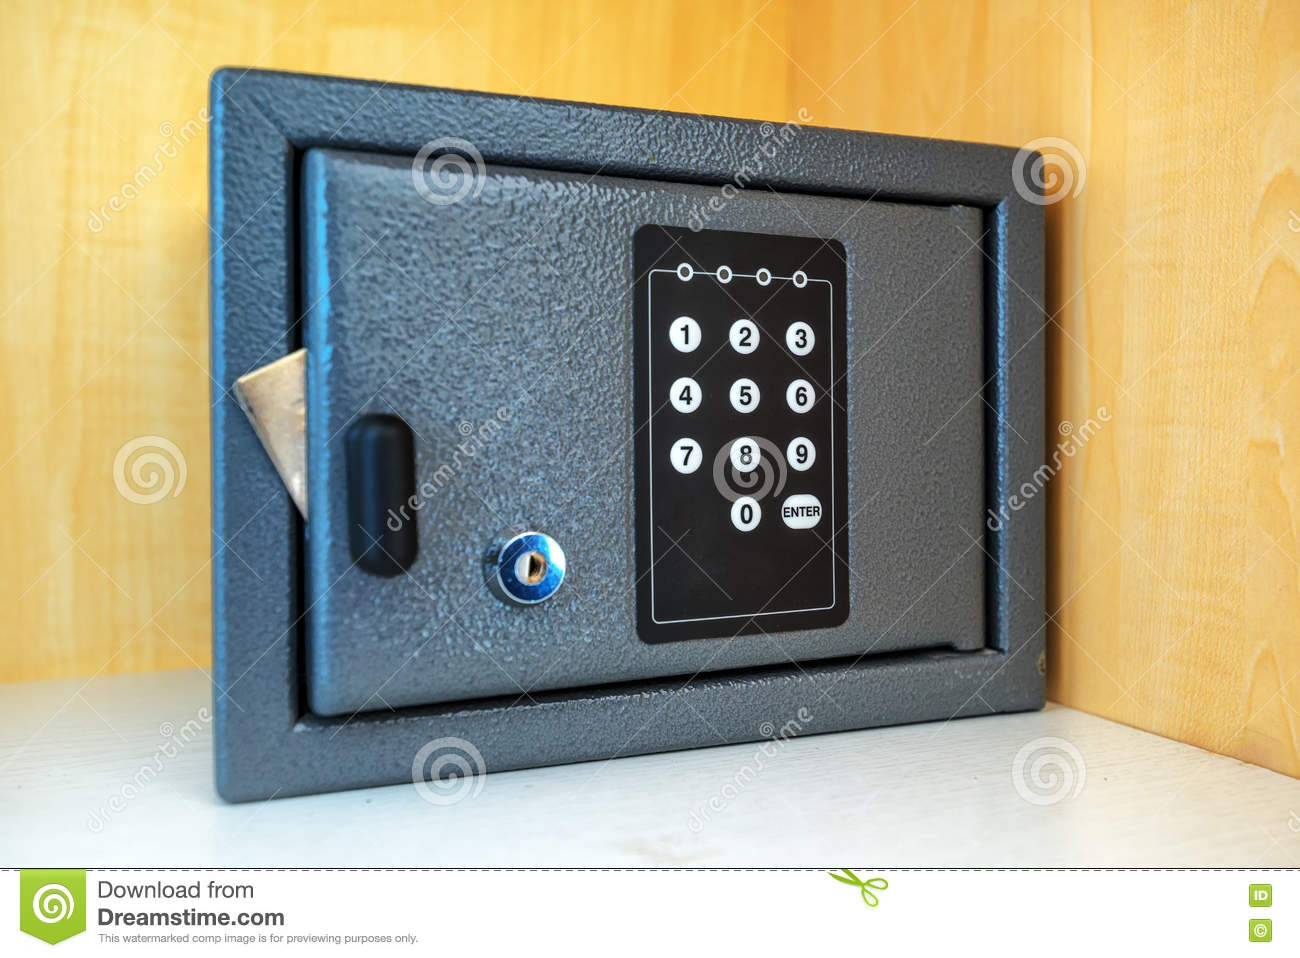 Hotel Room Safety Deposit Box Stock Photo - Image of object